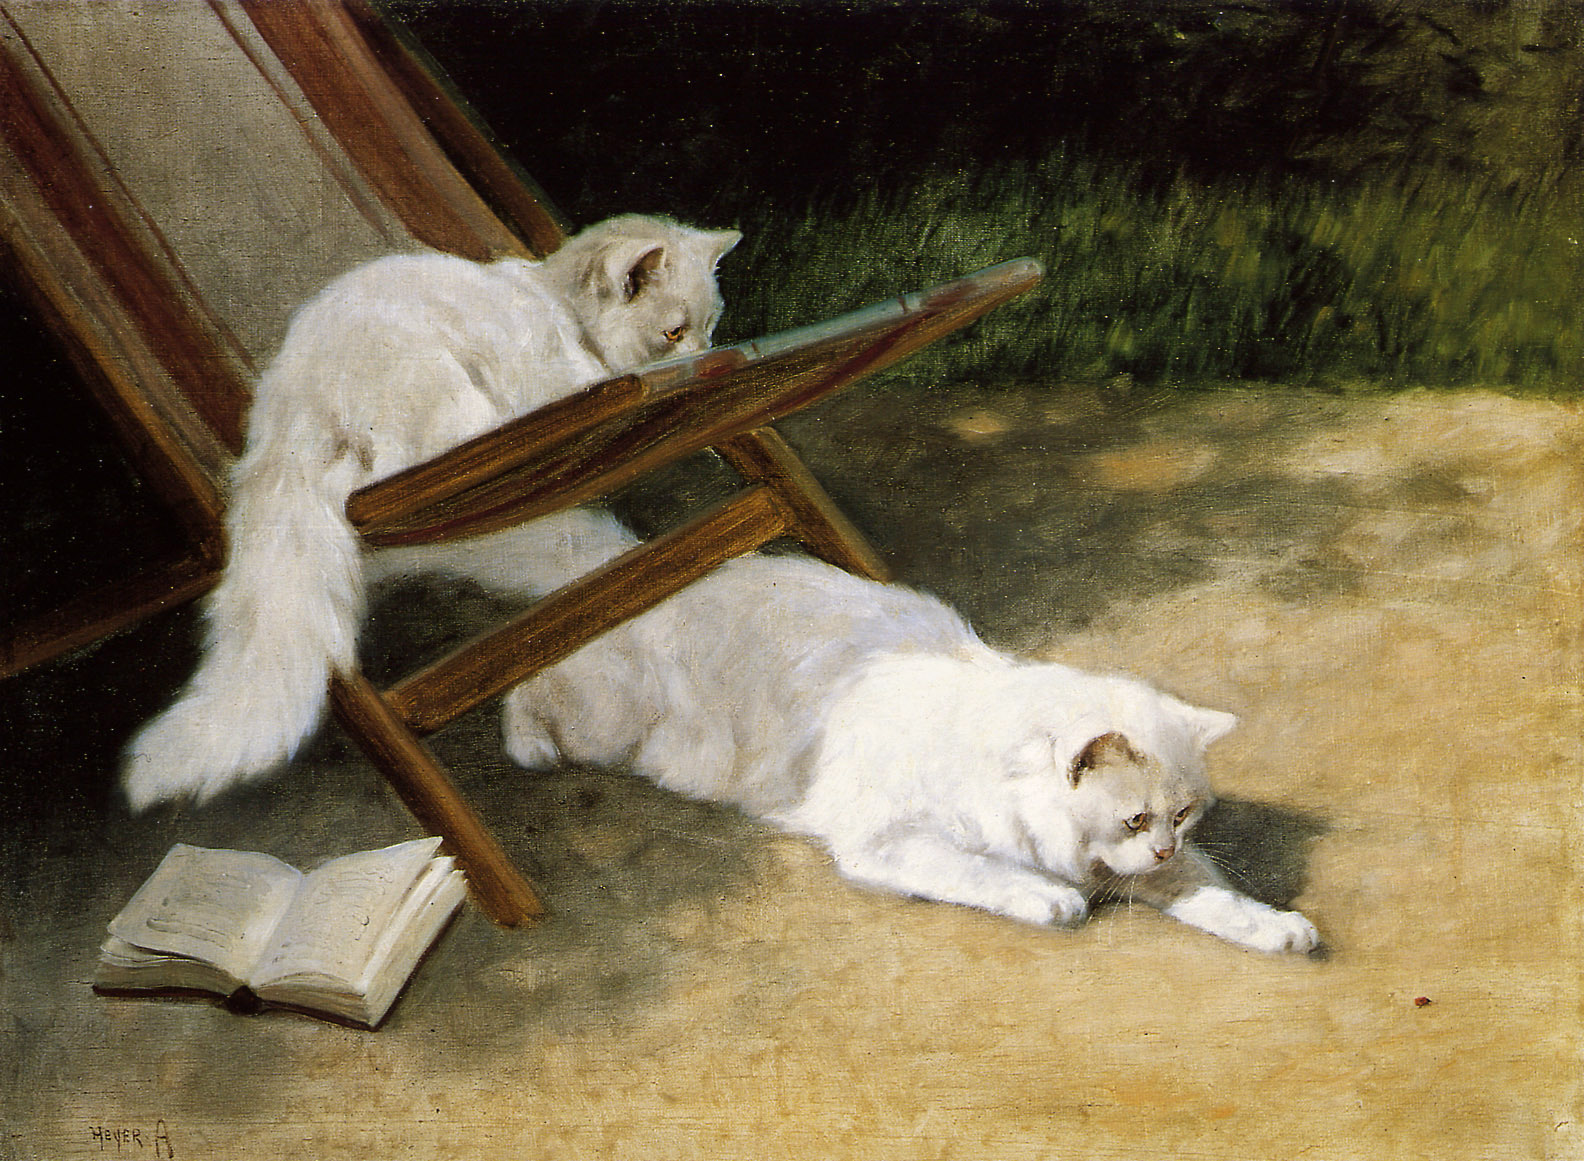 Heyer-Arthur-Persian-cats-Sun-private-collection